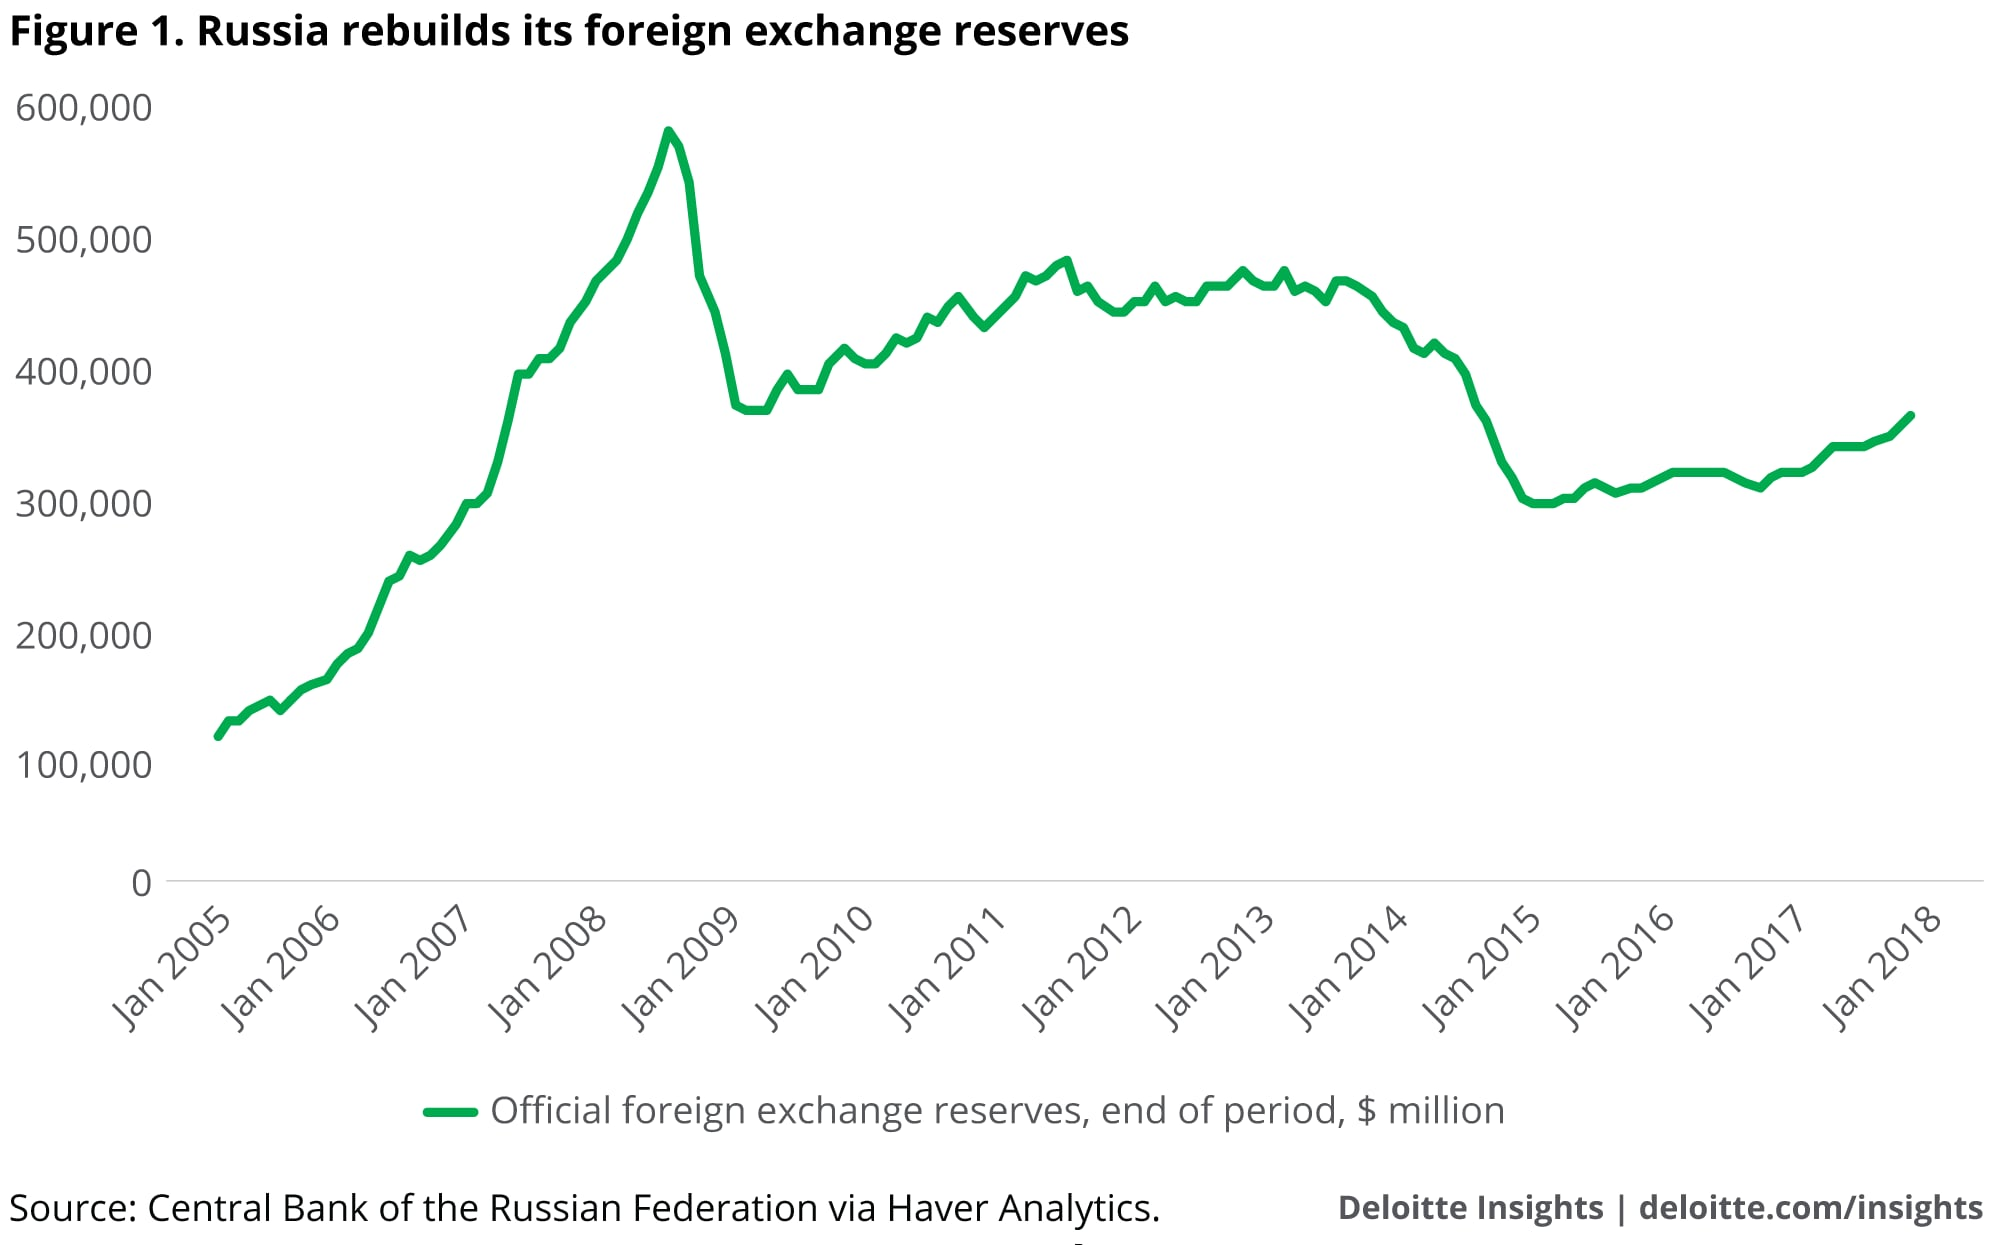 Russia rebuilds its foreign exchange reserves